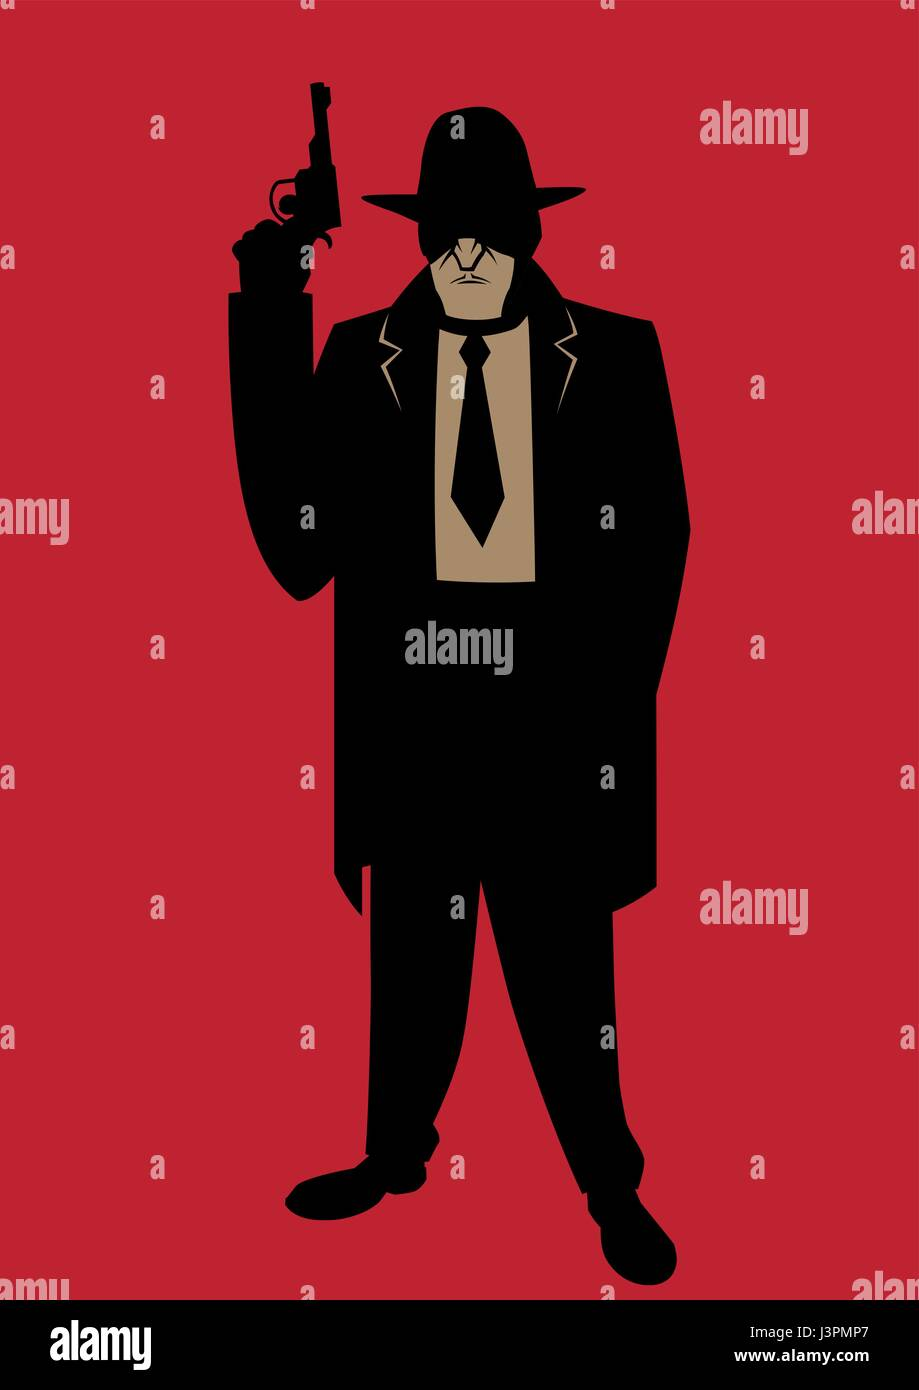 Cartoon illustration of gangster from the Prohibition era. - Stock Vector